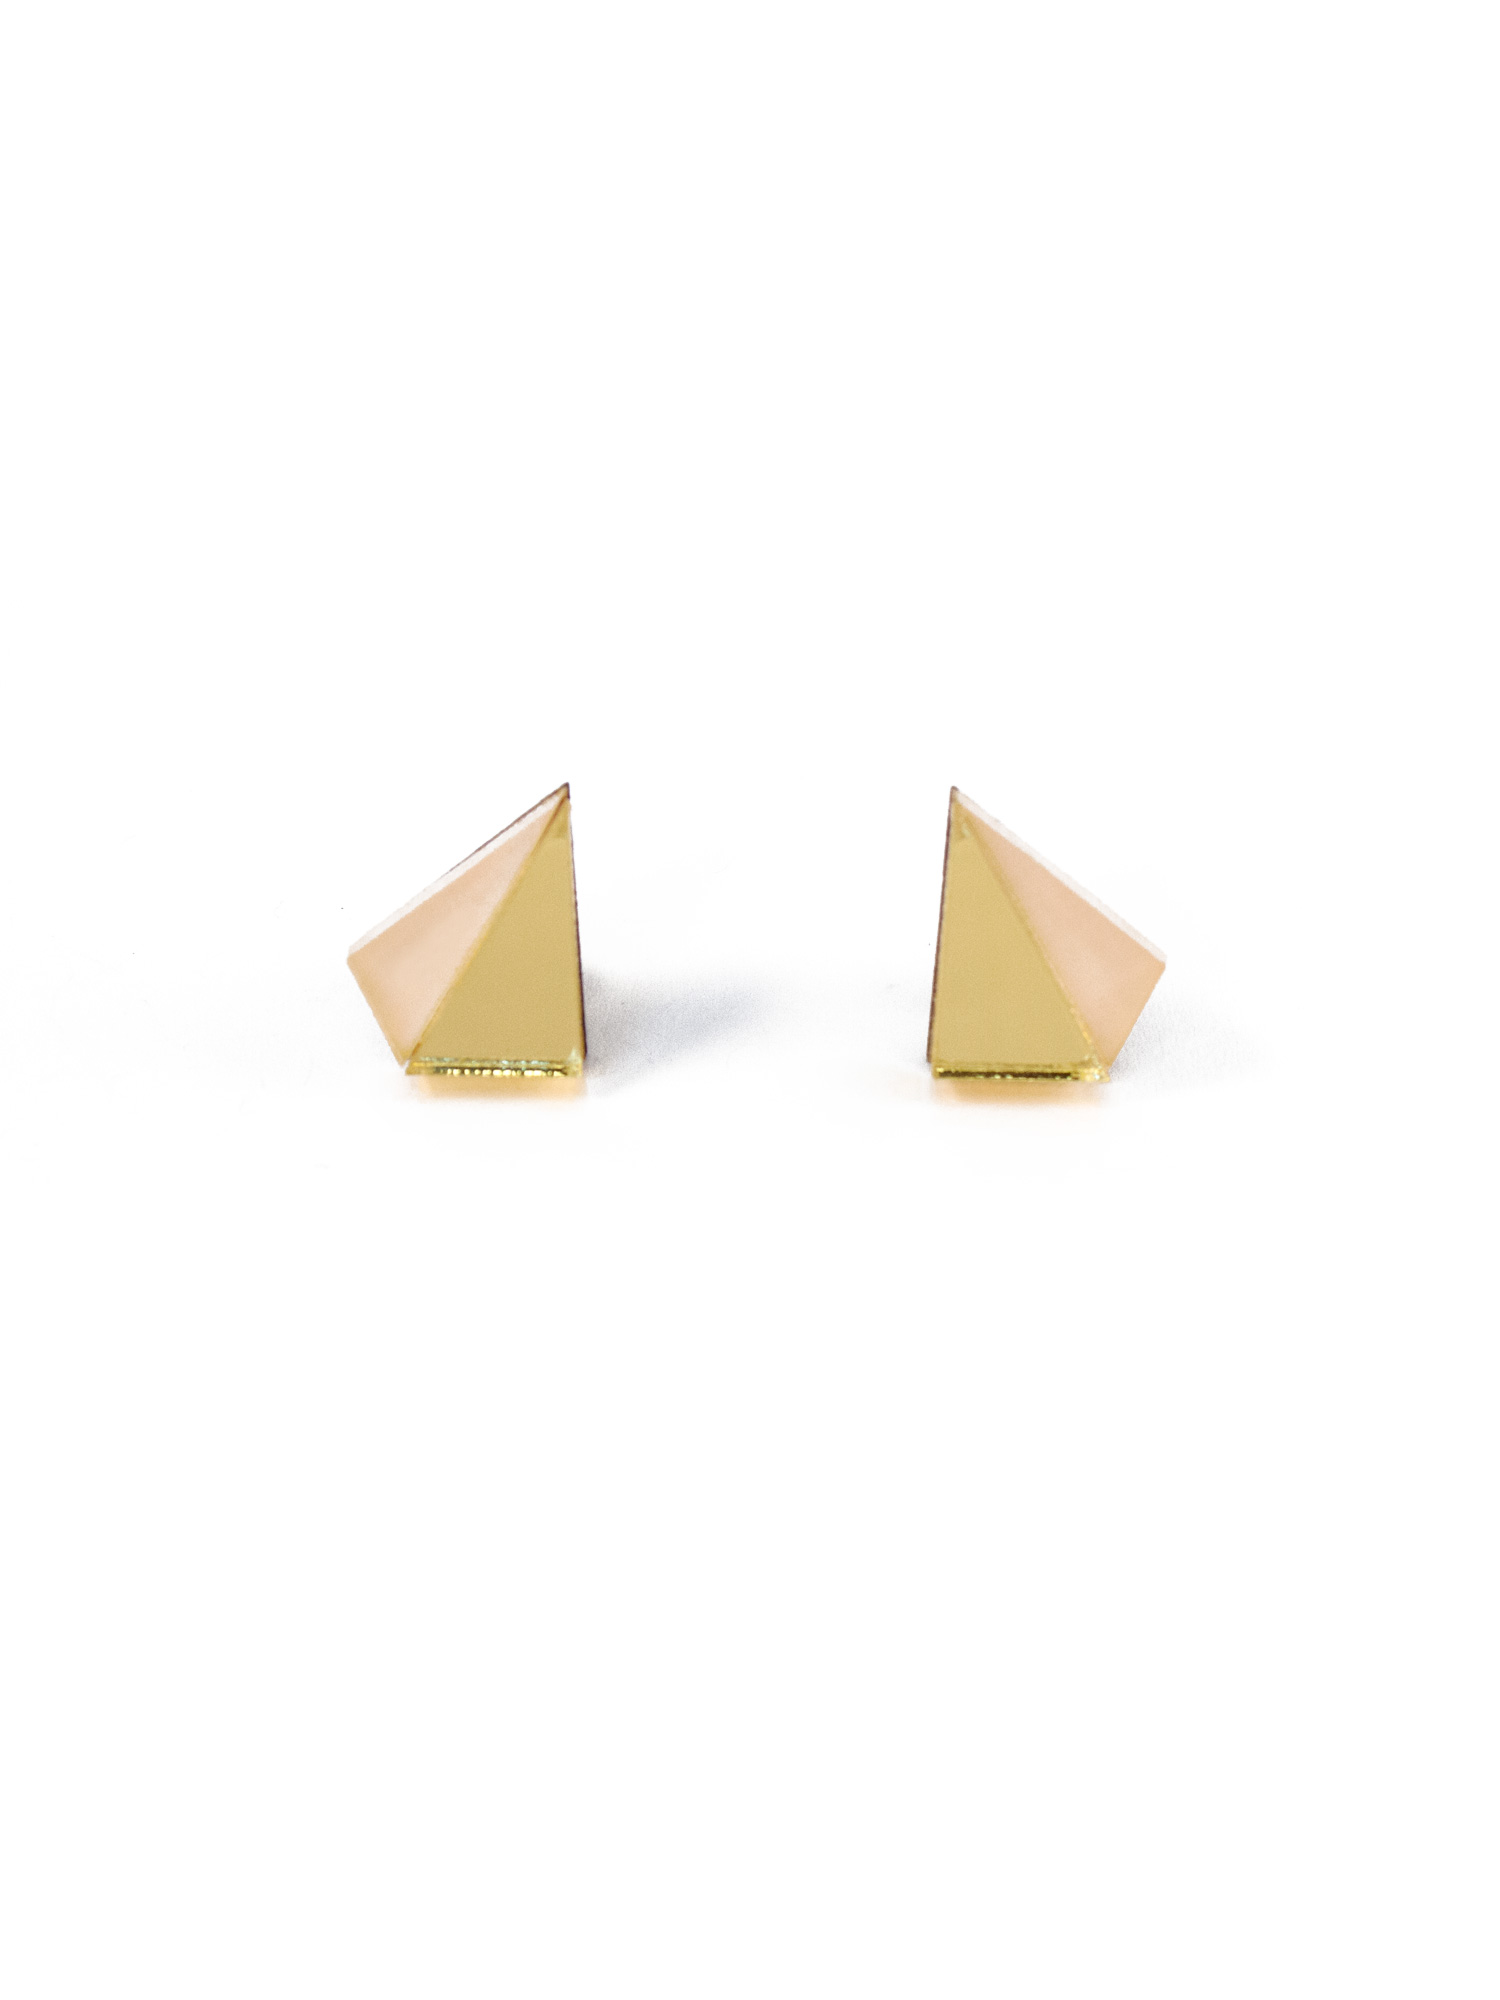 Wolf & Moon Little Pyramid Studs Gold_Peach.jpg